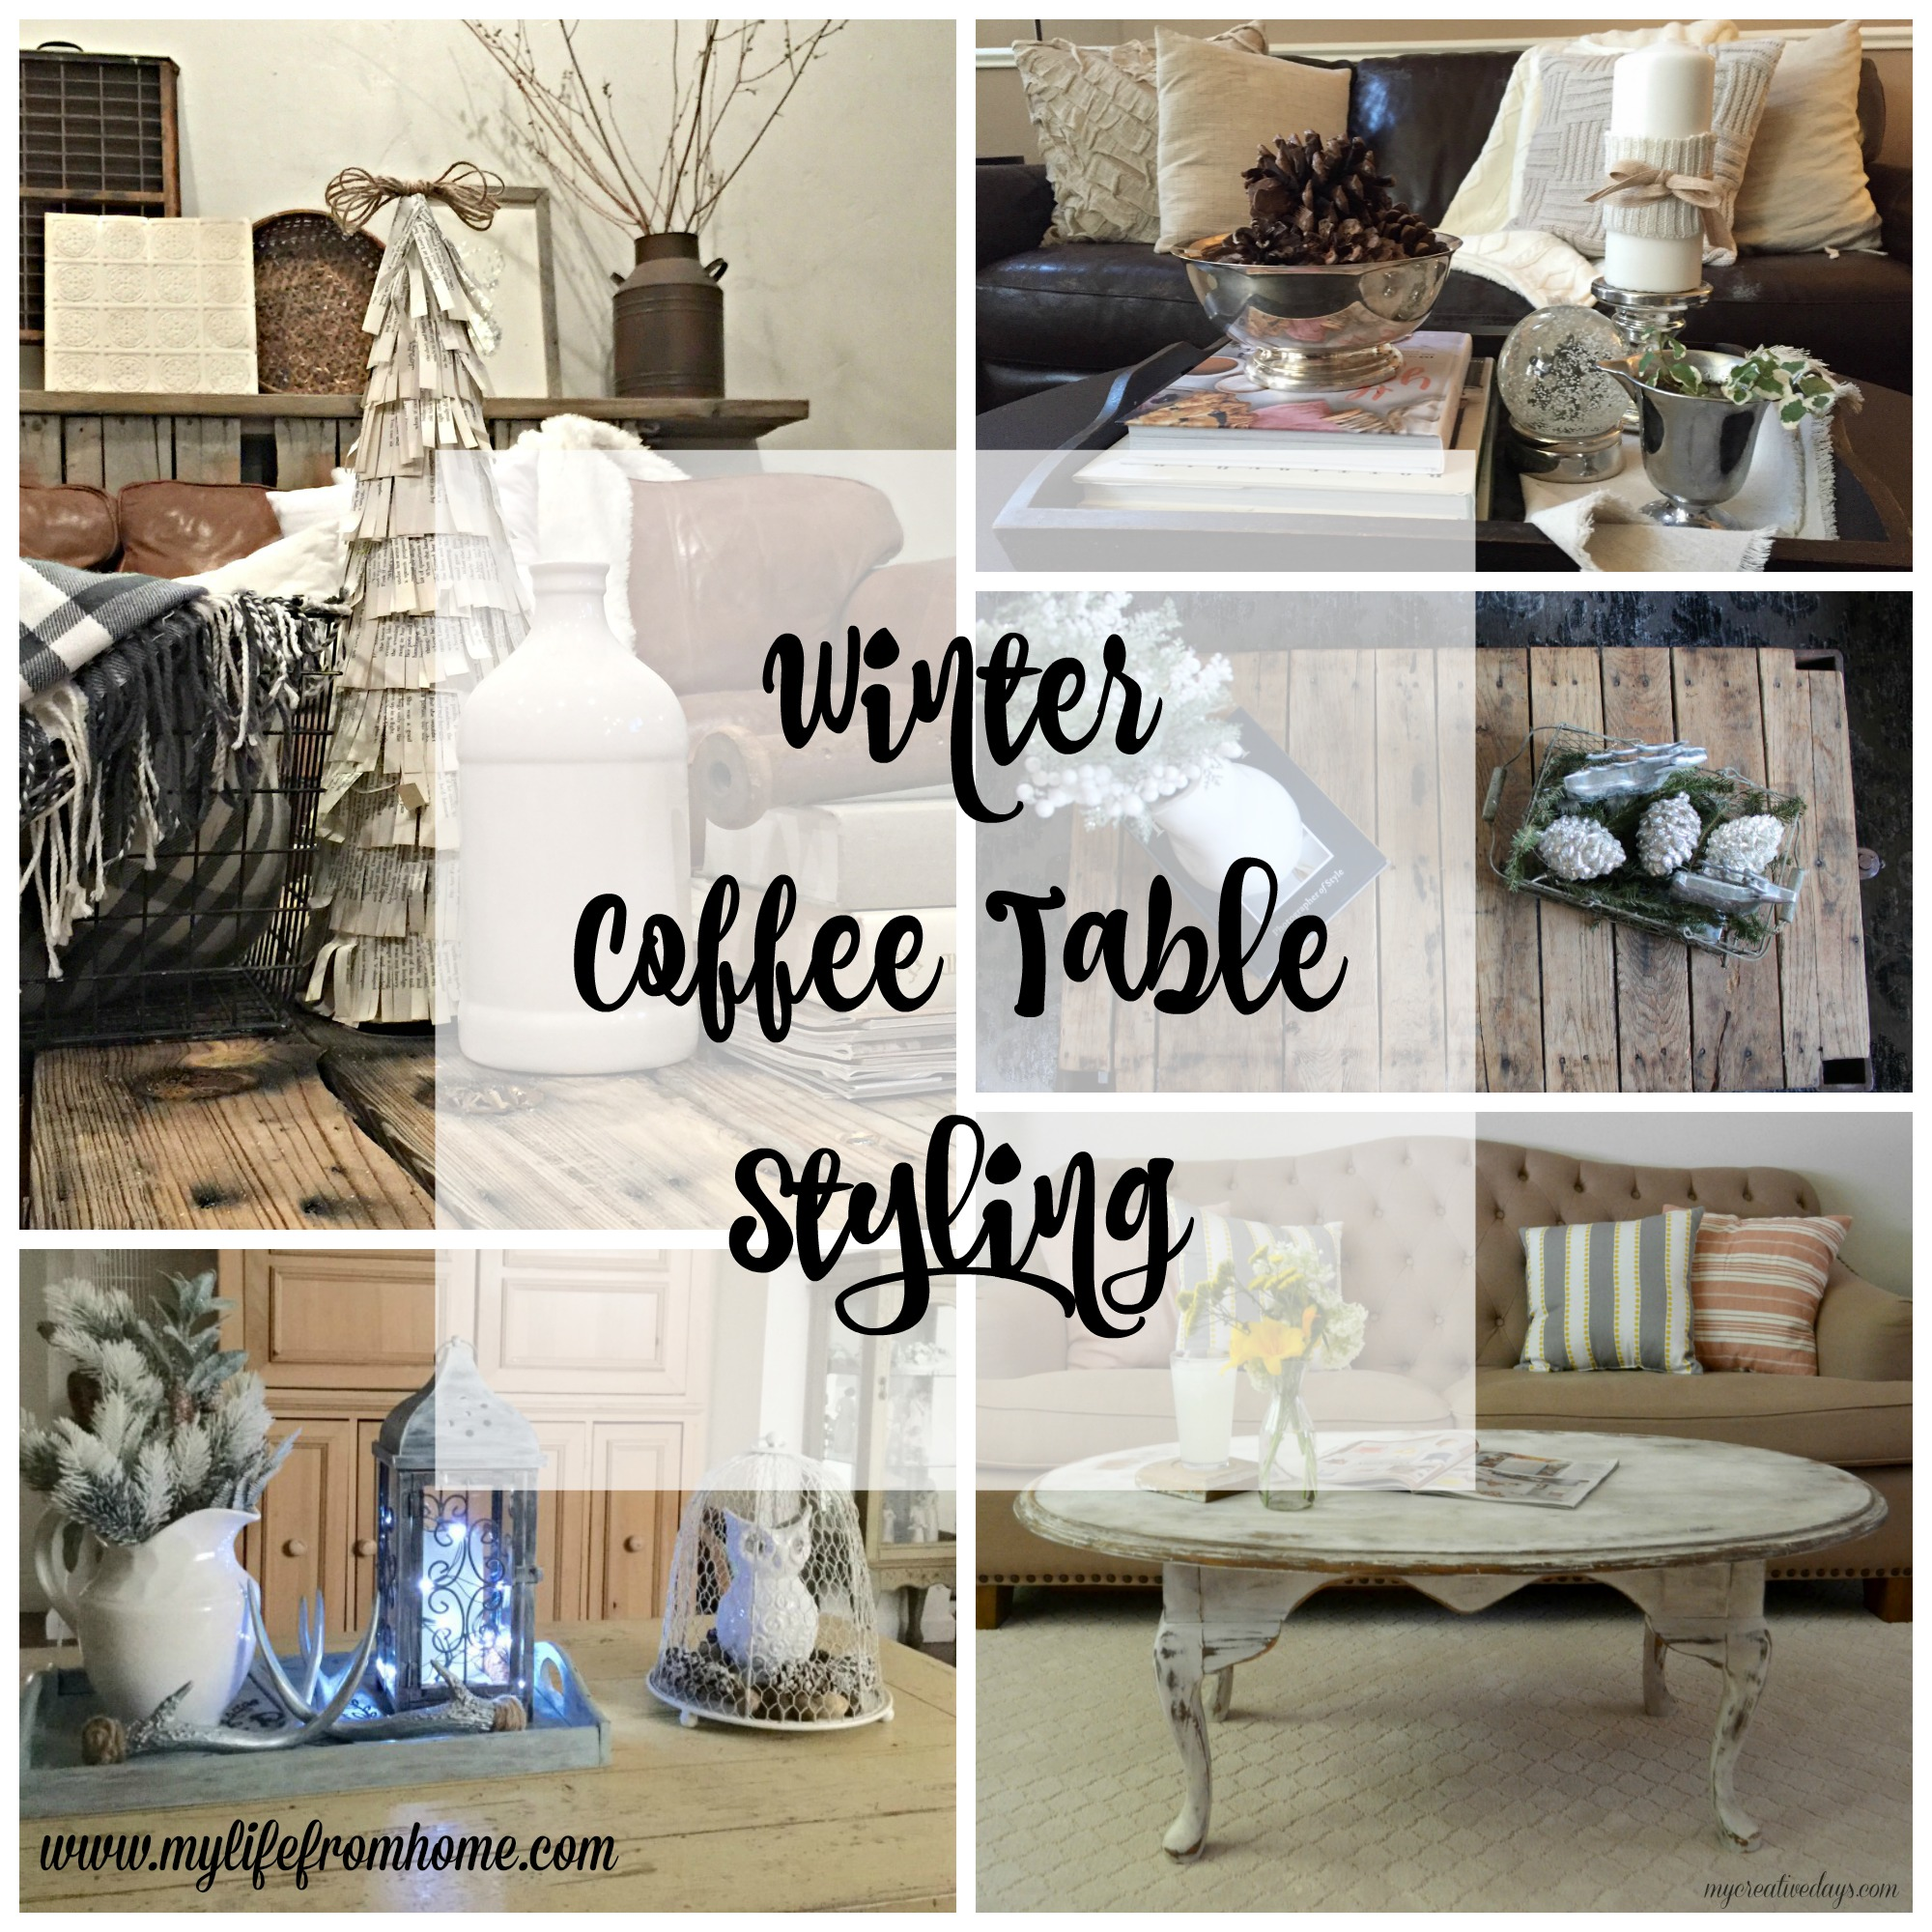 Winter Coffee Table Styling Round Up by www.mylifefromhome.com